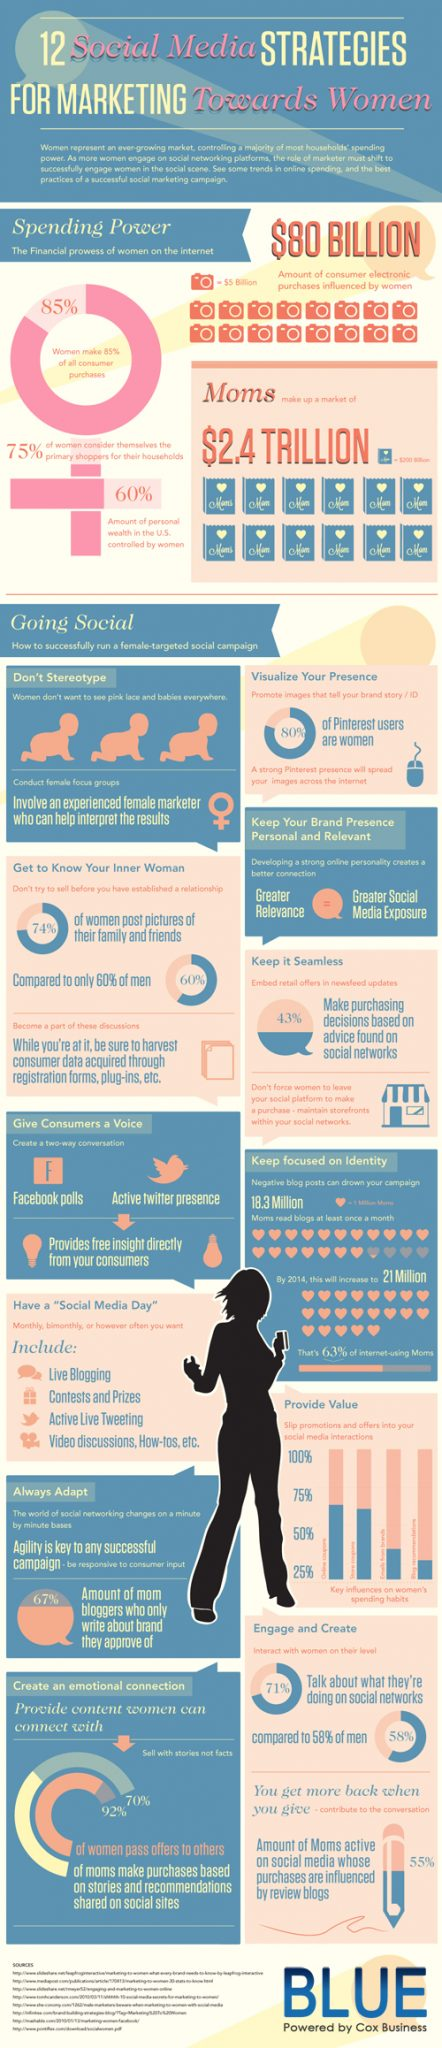 12 Social Media Strategies to Reach Women